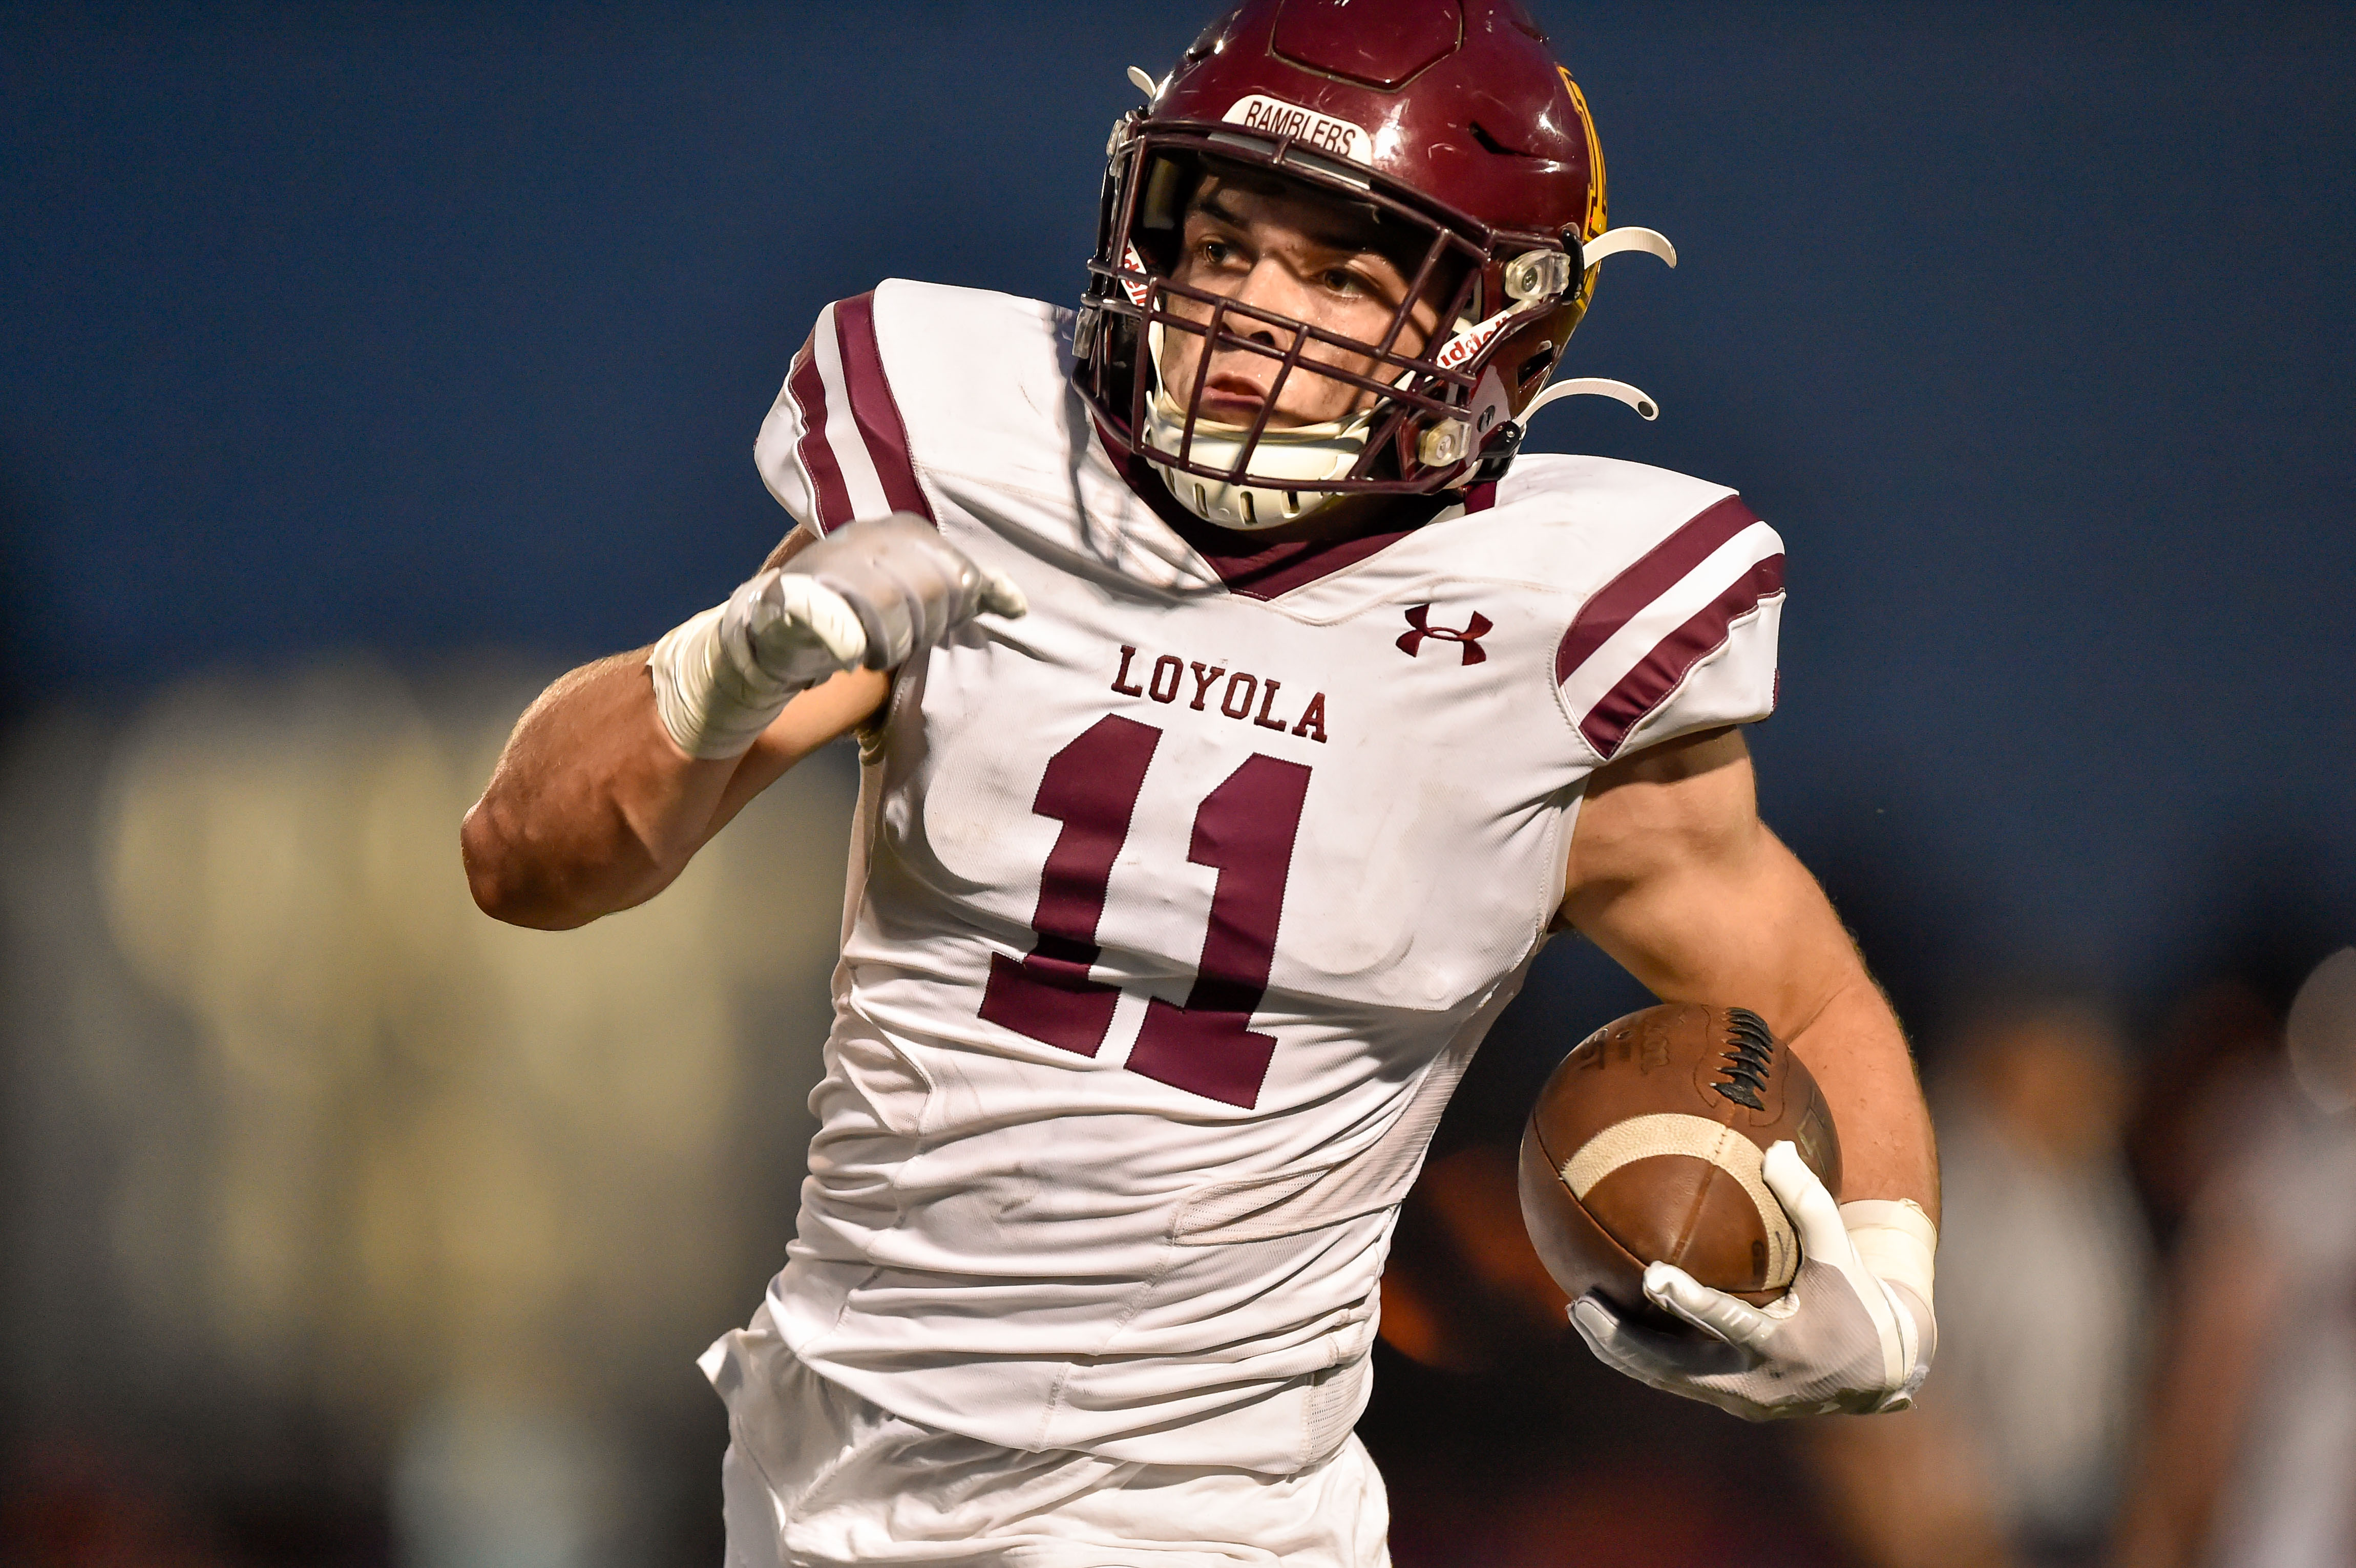 Loyola's Danny Collins (11) runs for a touchdown against Brother Rice.